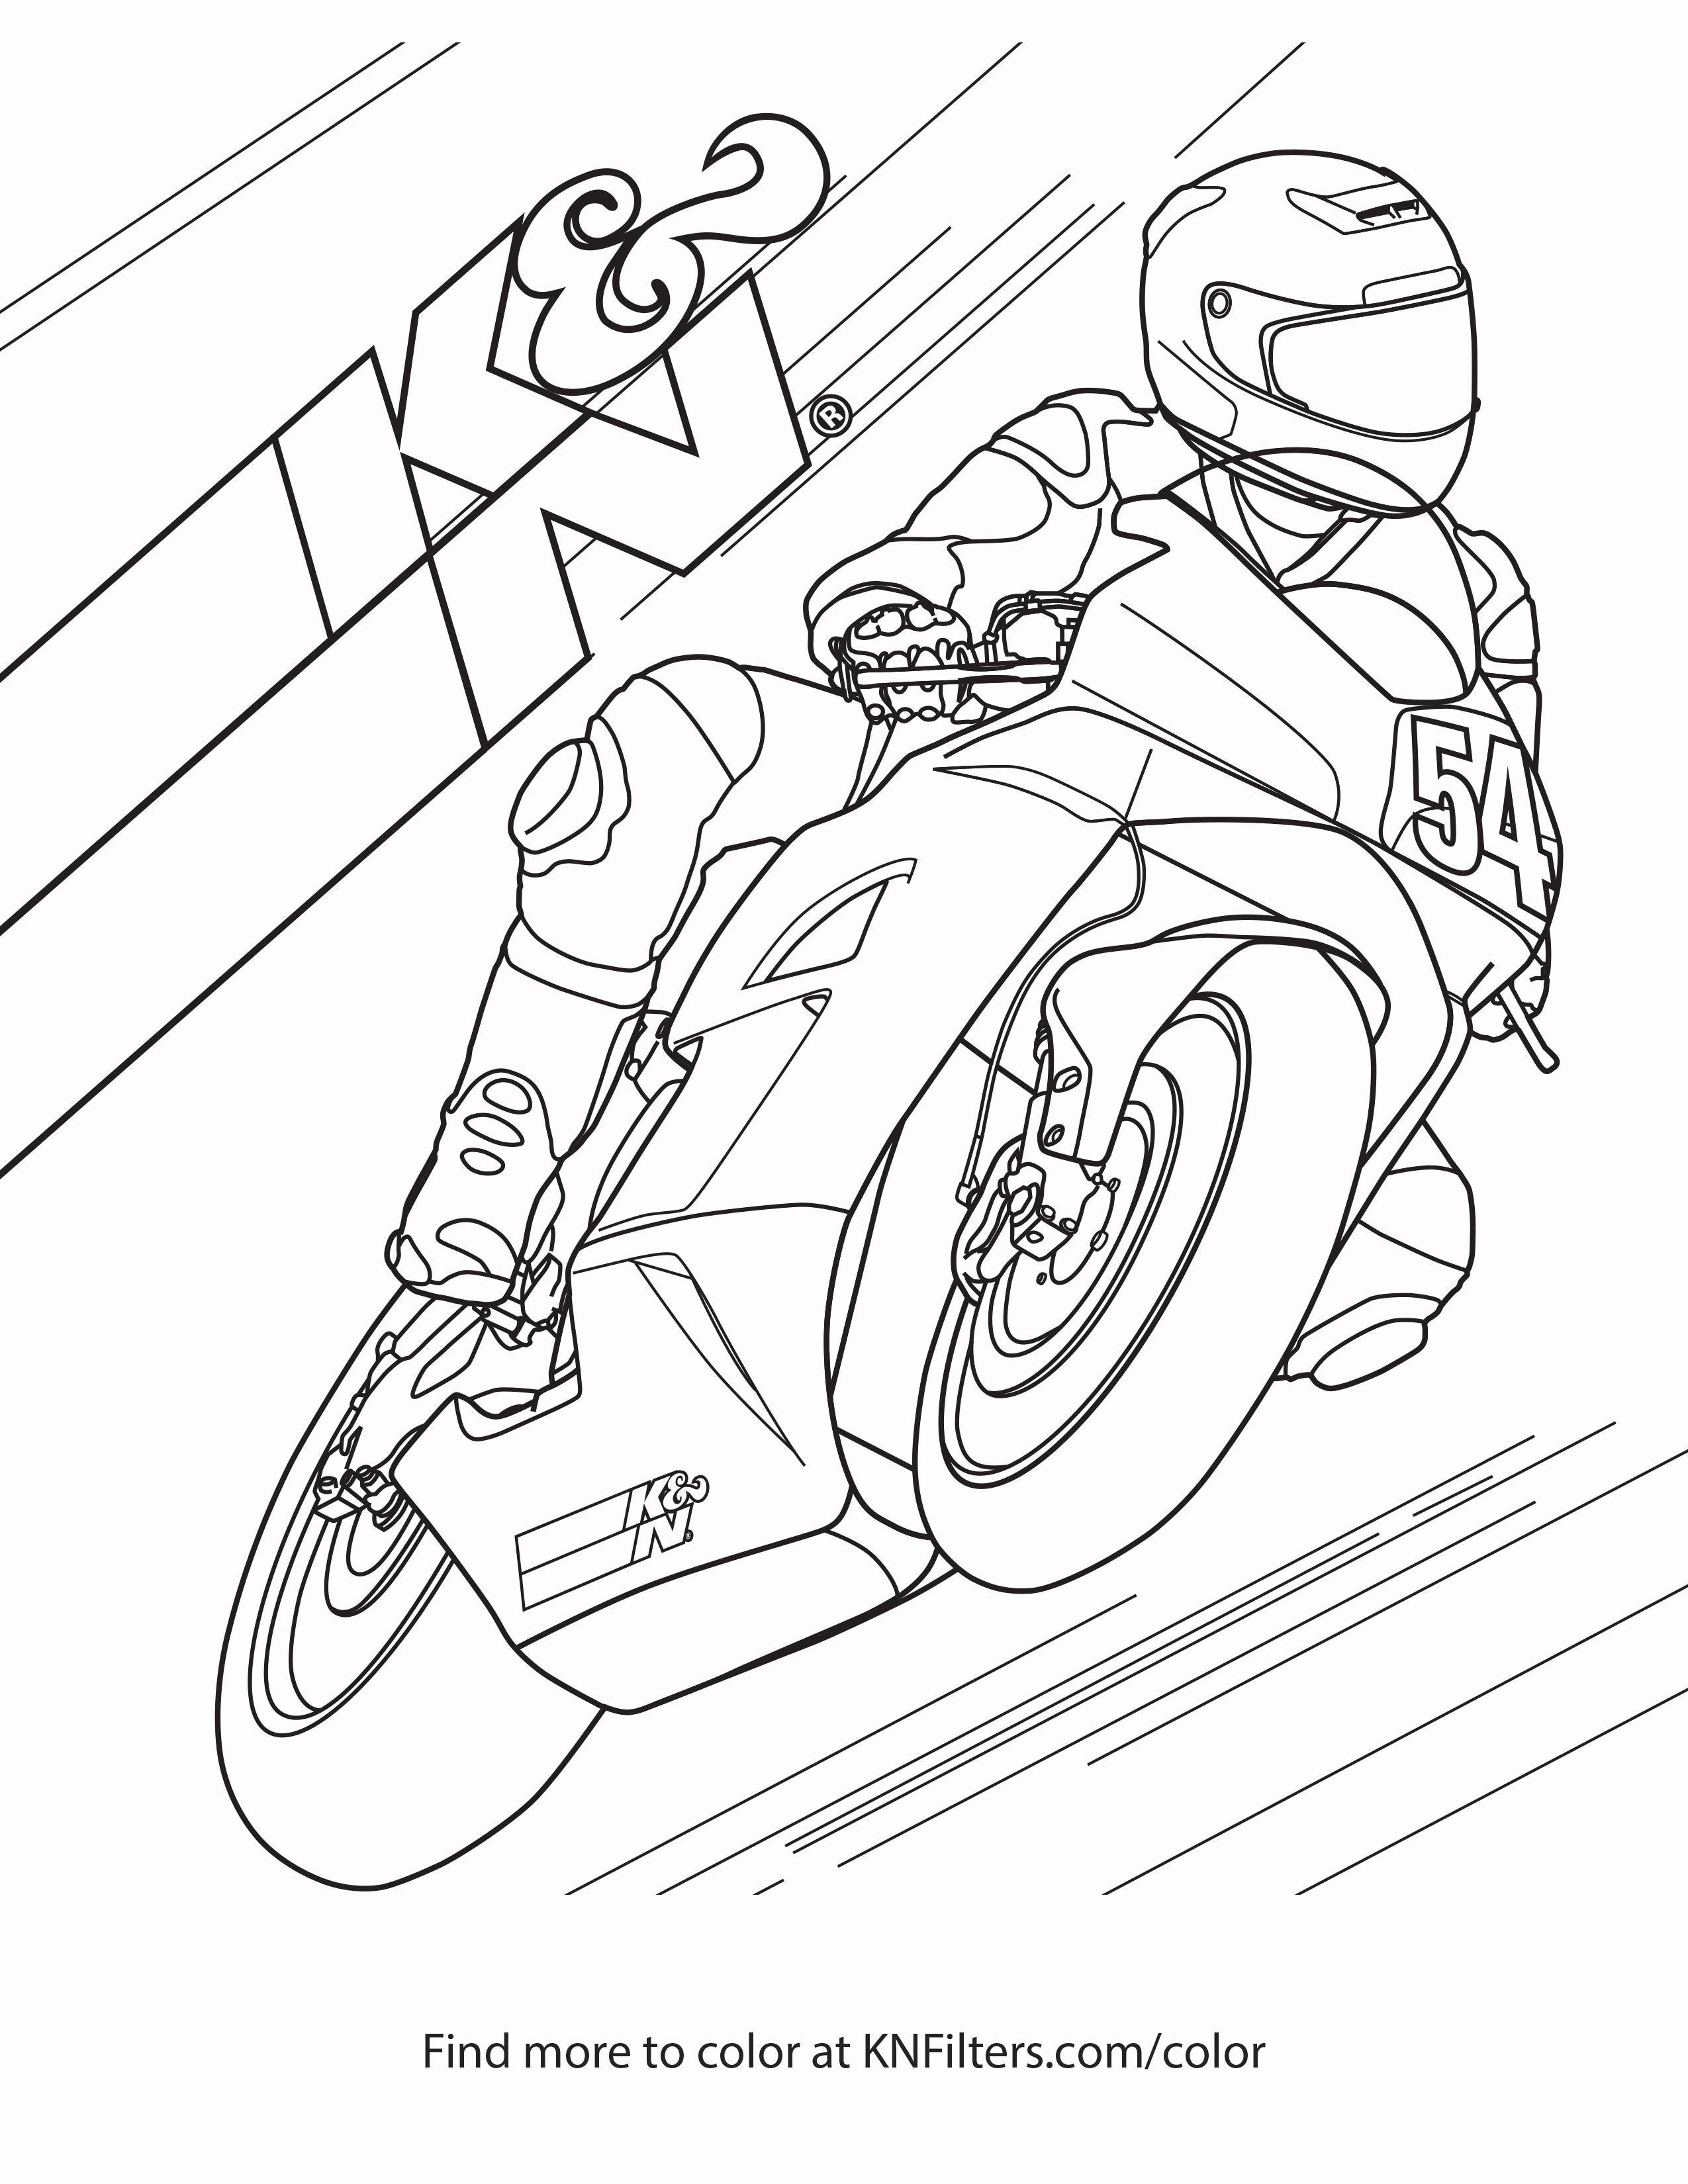 Bike Helmet Coloring Pages Coloring Pages Cute Coloring Pages